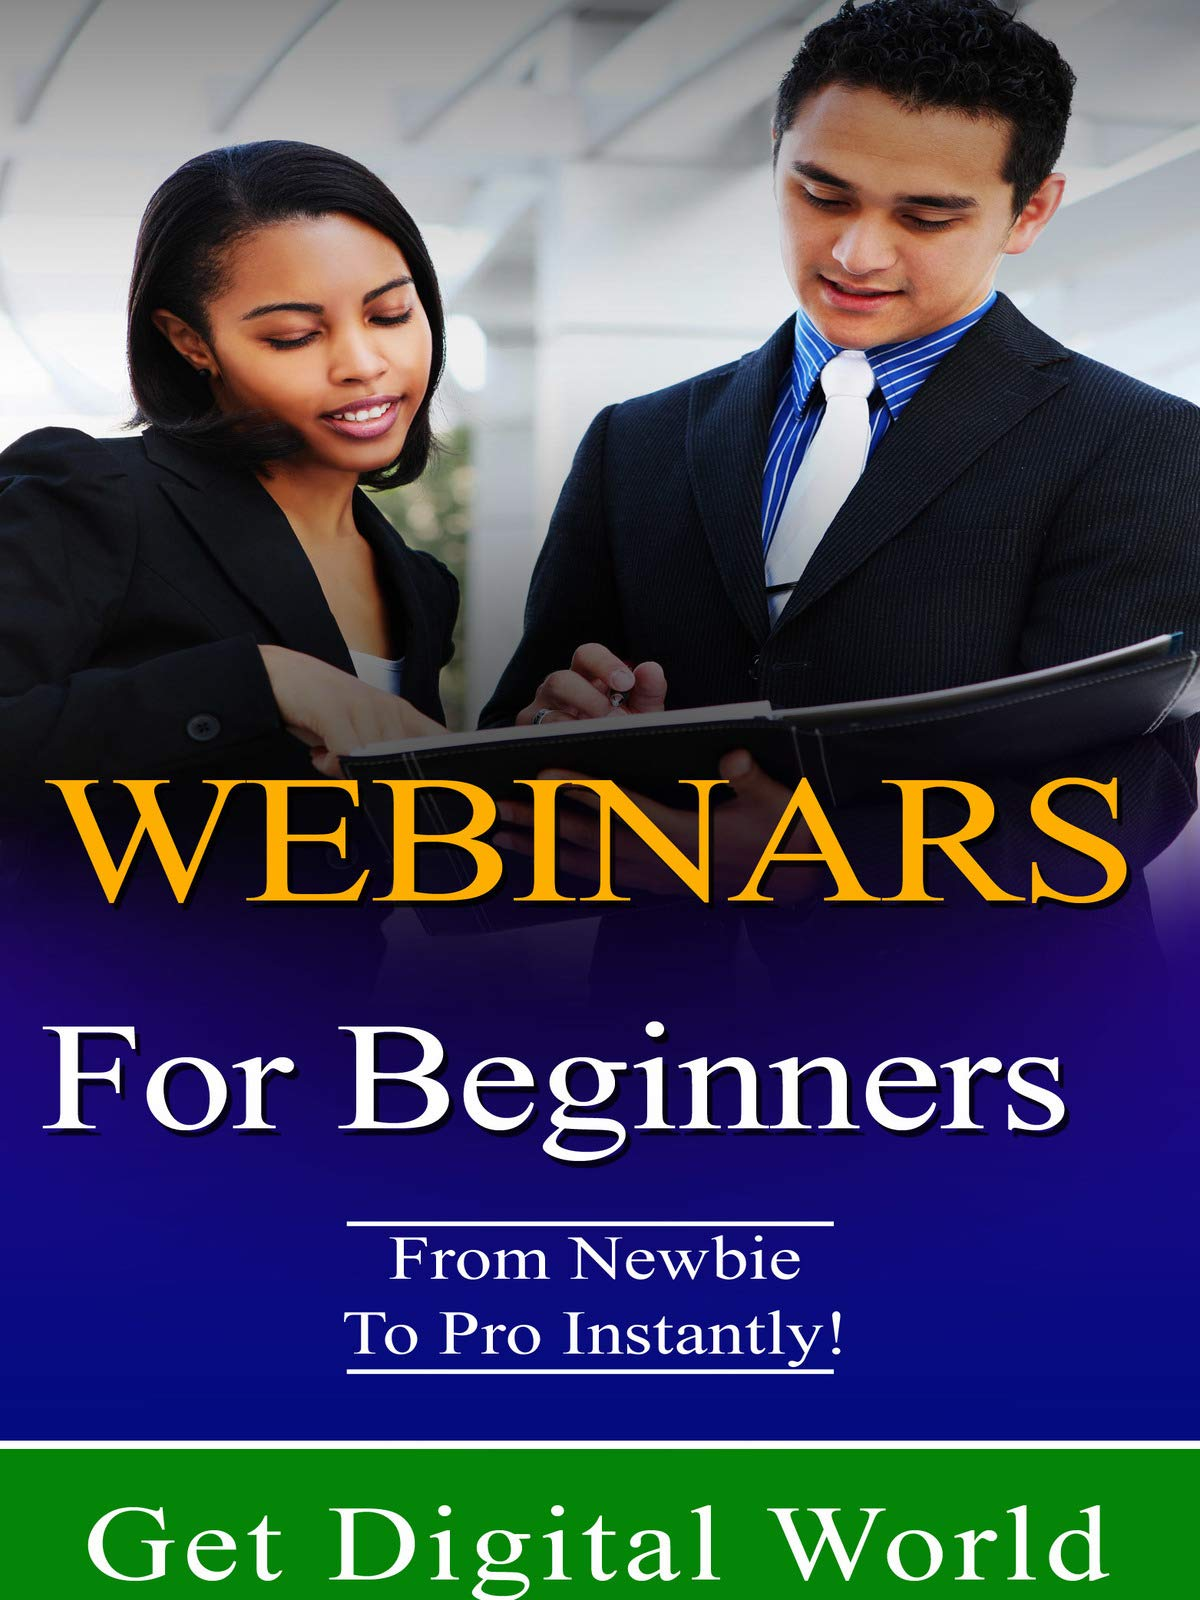 Webinars For Beginners: From Newbie To Pro Instantly